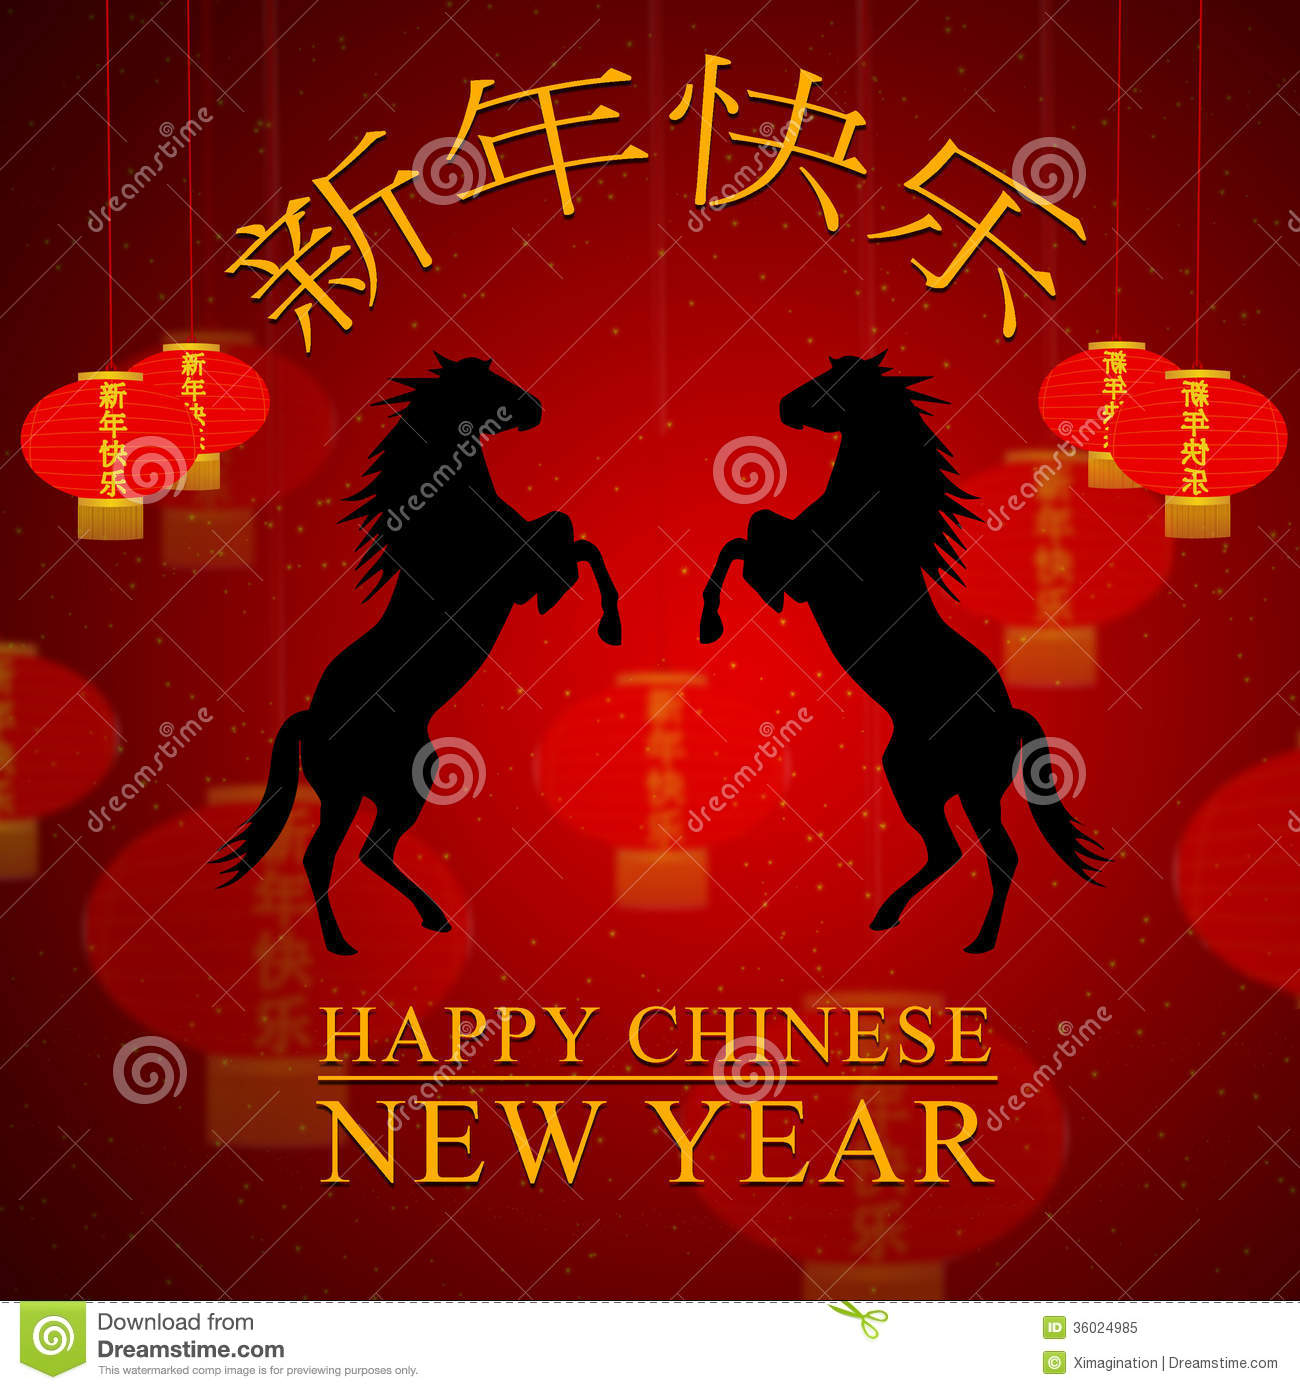 Red Happy Chinese New Year! Card Stock Vector - Image: 47810232